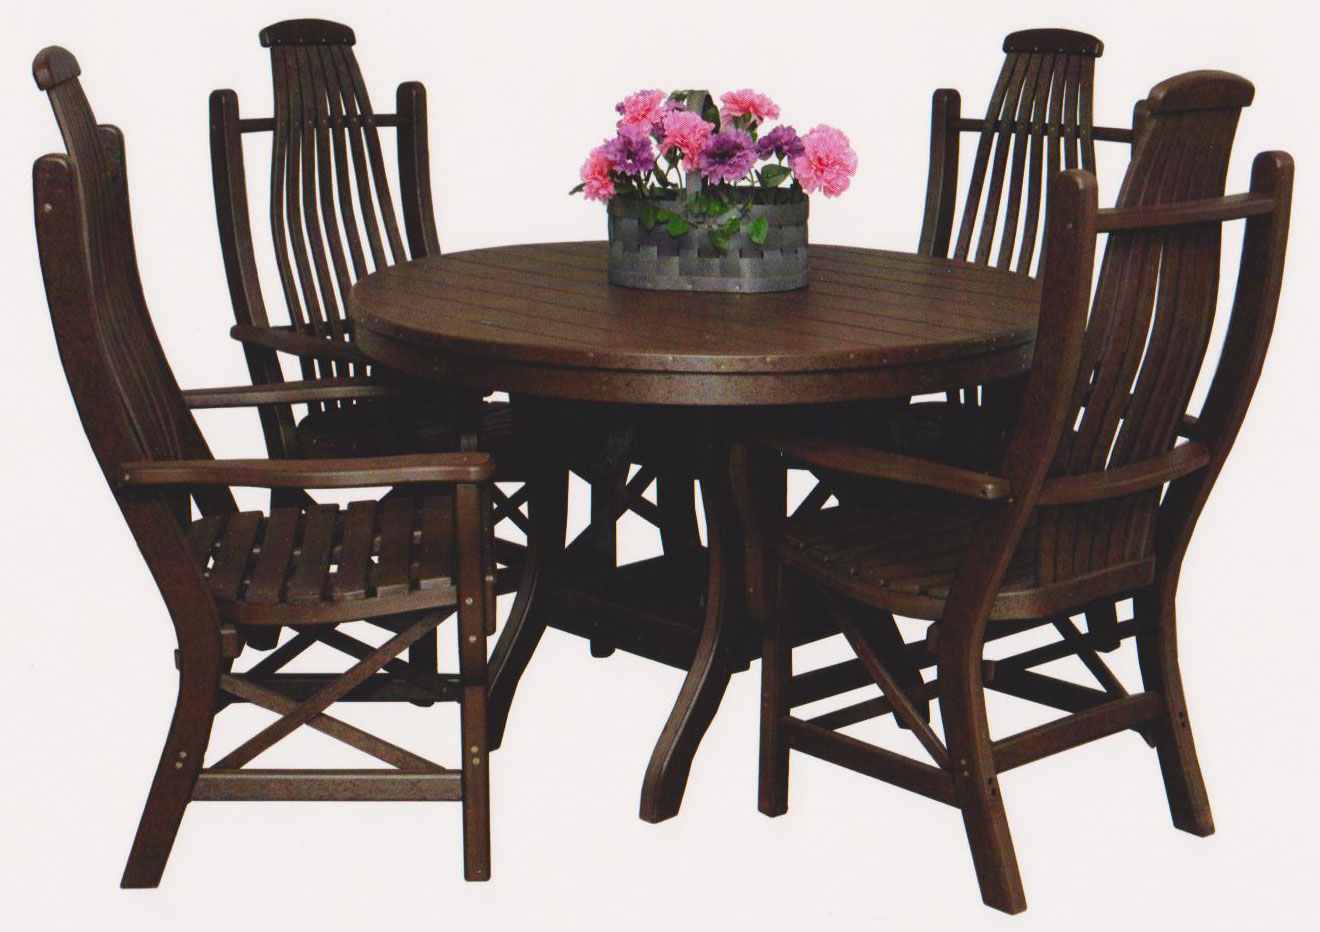 Bylers Patio 44 Round Table